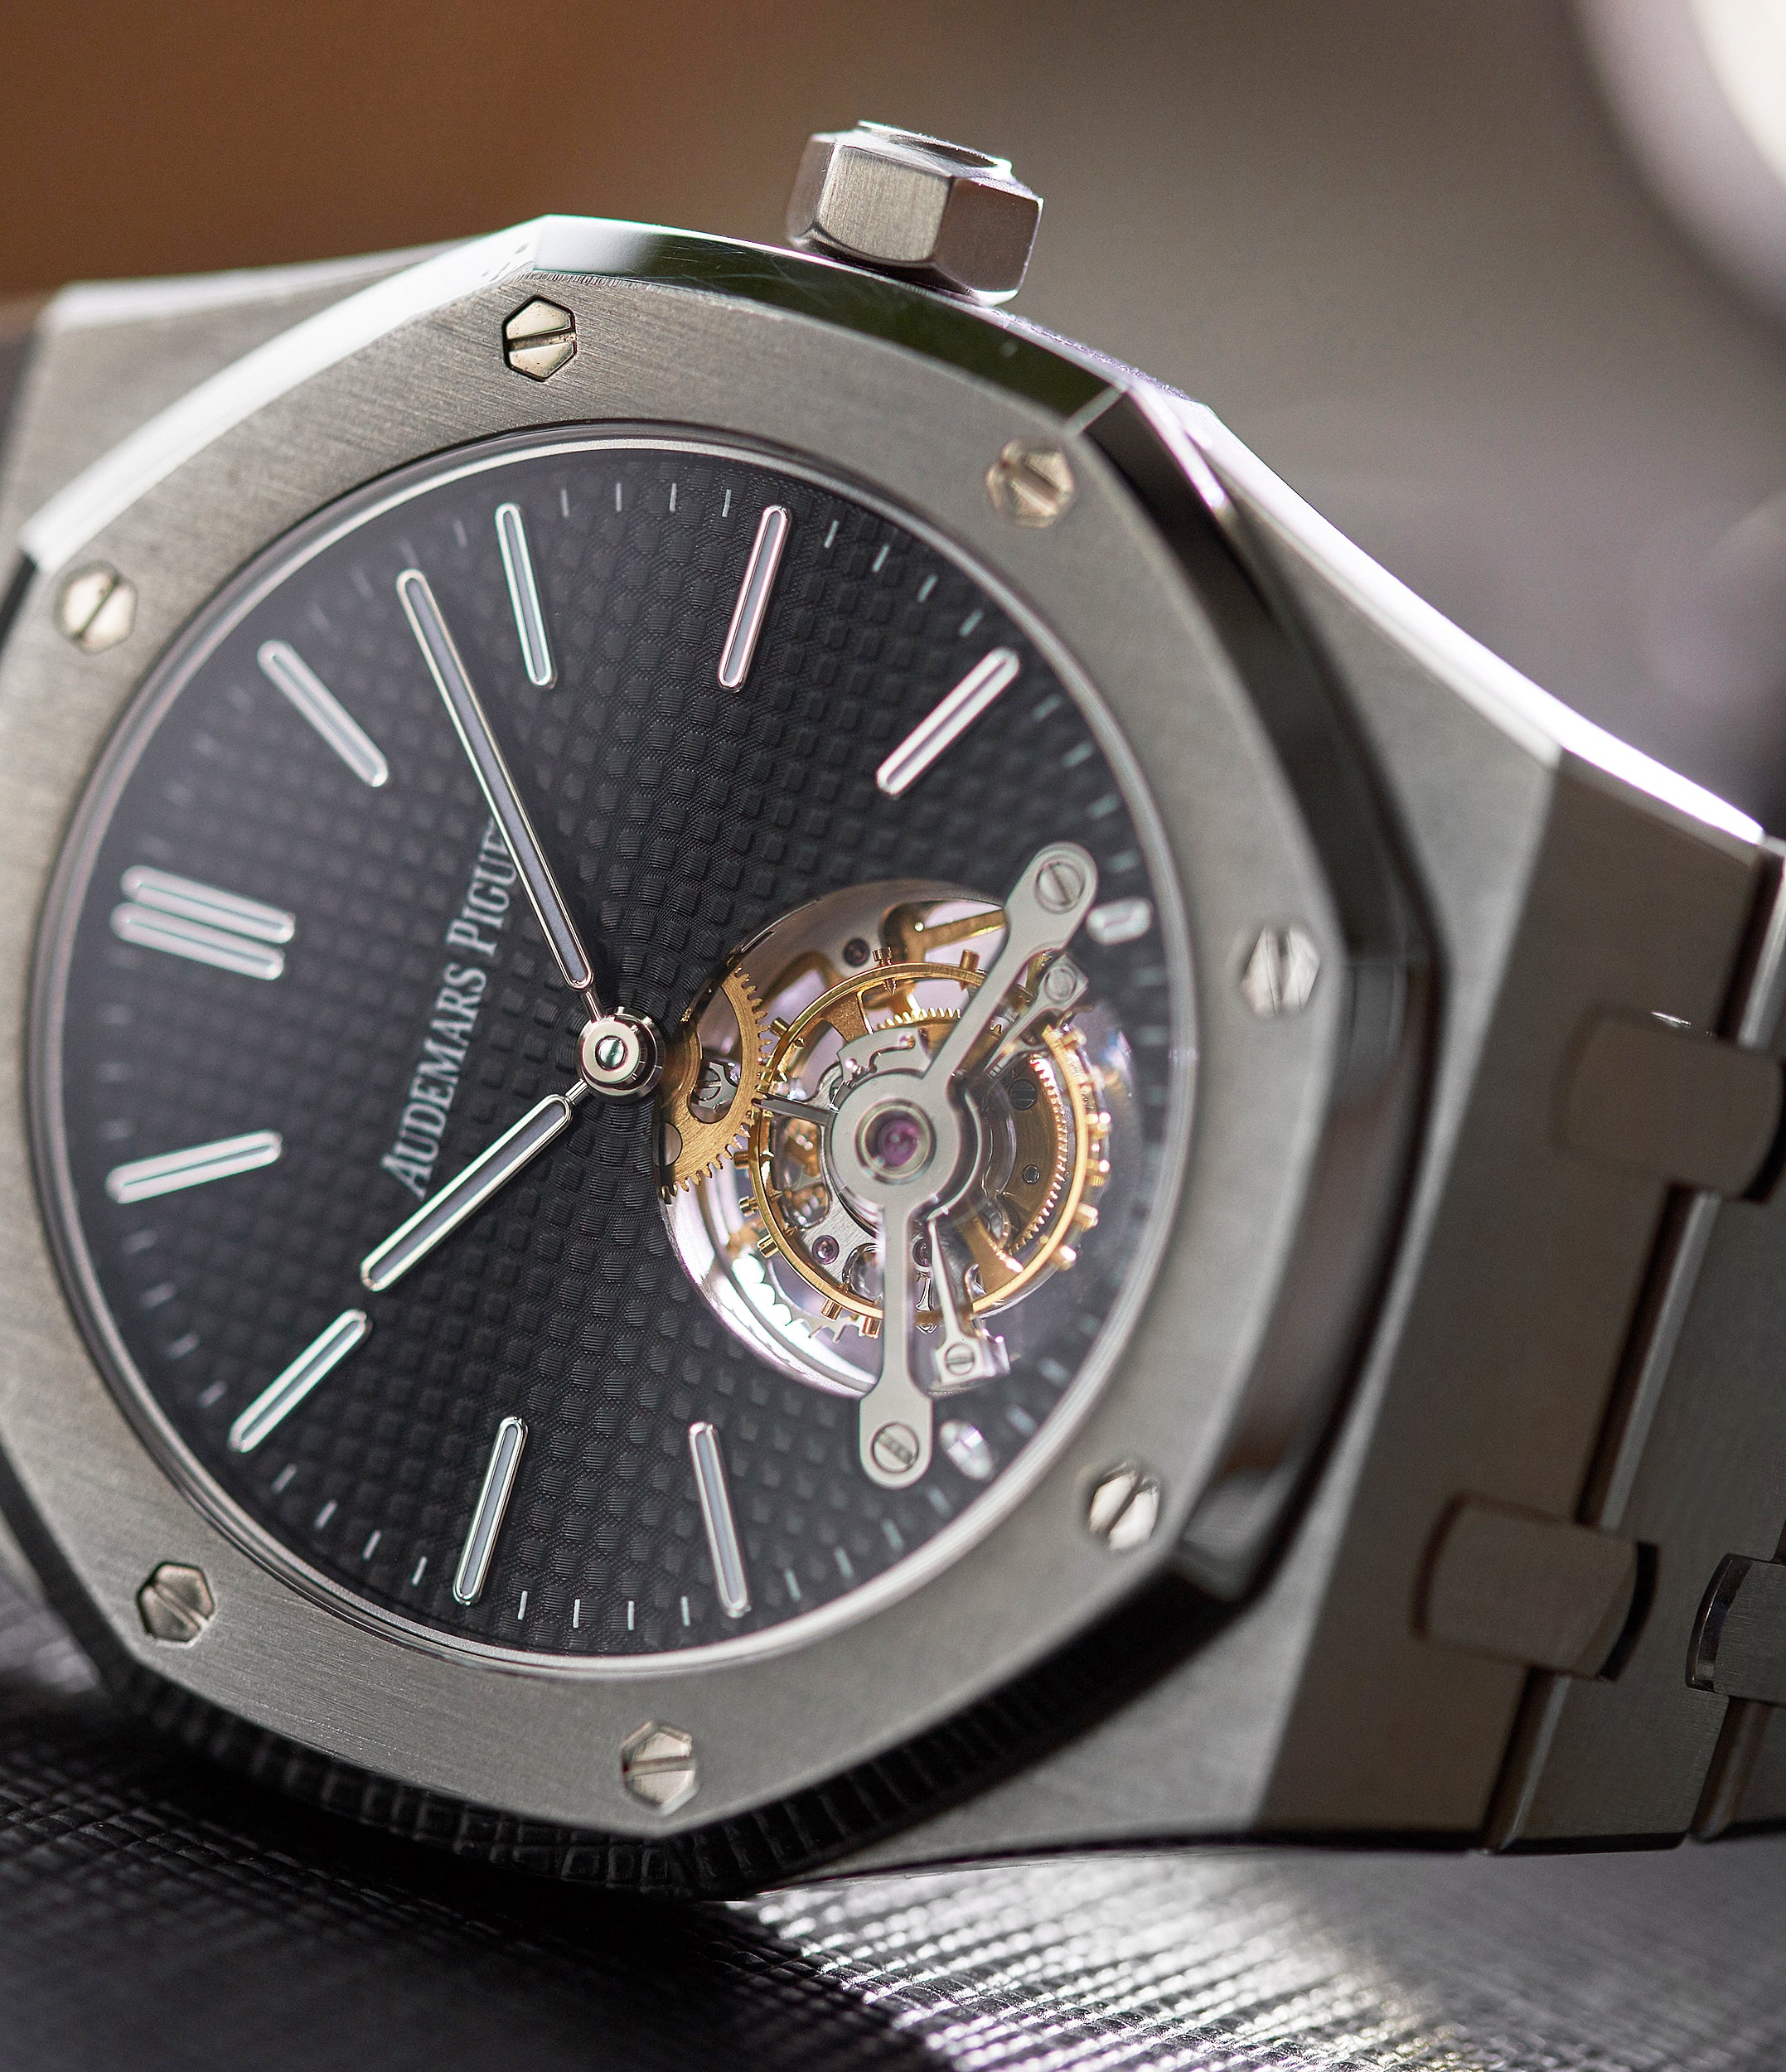 Japanese Limited Edition of 45 Audemars Piguet Royal Oak Tourbillon extra-slim Special Edition Japanese steel pre-owned watch for sale online at A Collected Man London UK specialist of rare watches